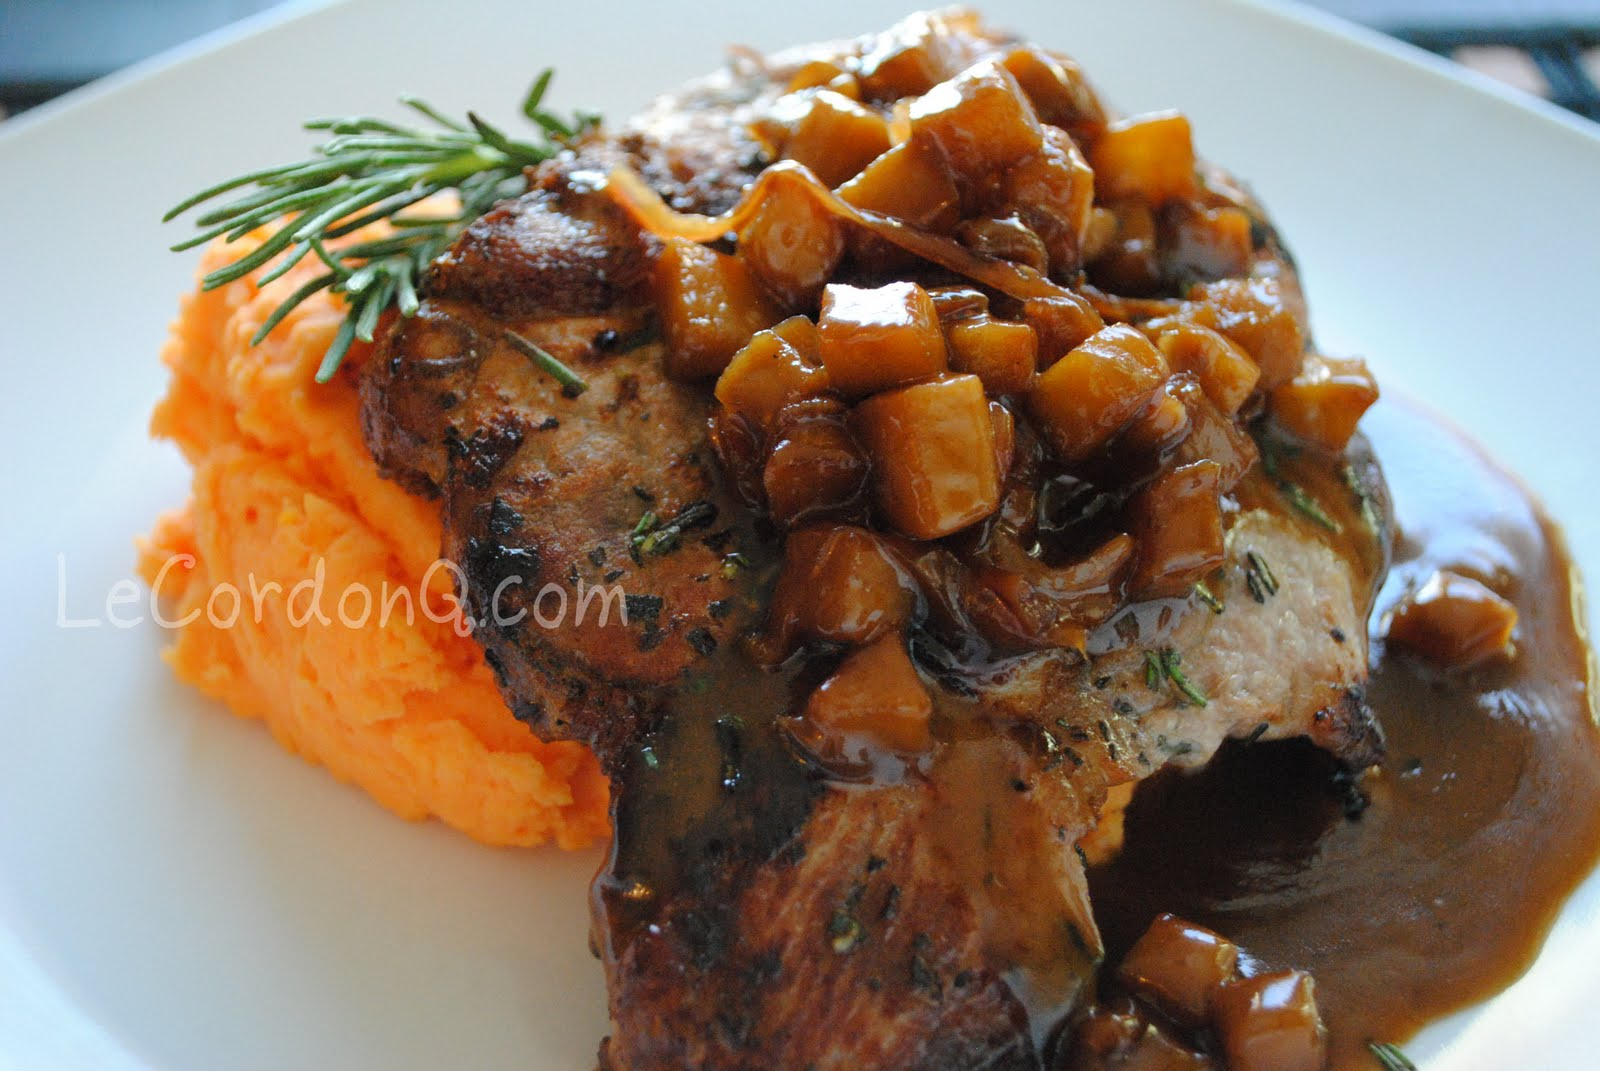 Balsamic Caramel Apple Pork Chops with Sweet Potato Mash - The Kitchen ...